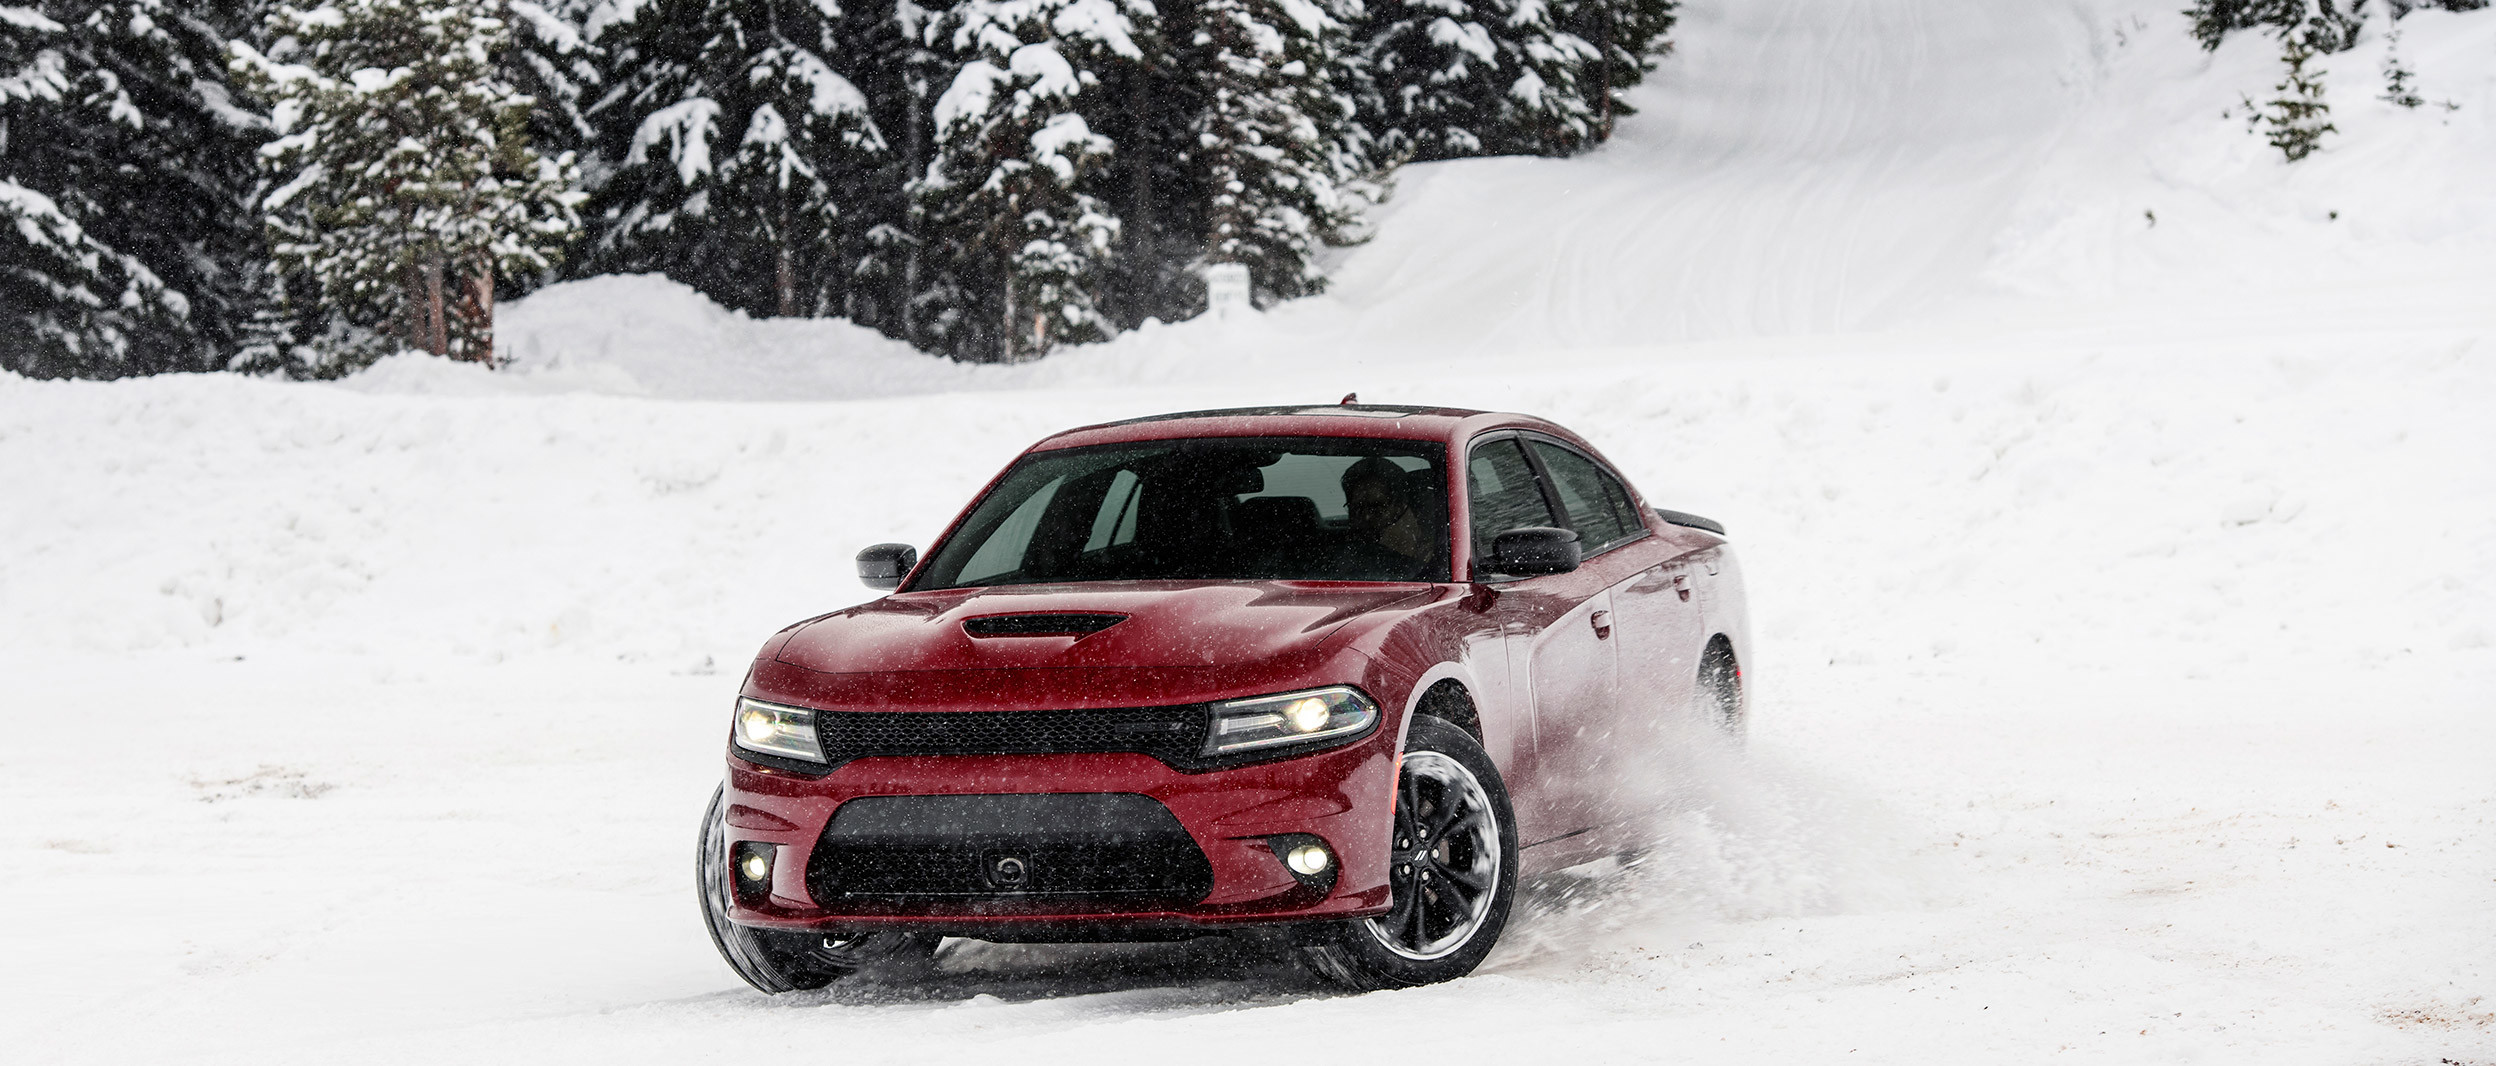 Burgundy Dodge Charger at the bottom of a snowy hill with snow-covered trees in the background.